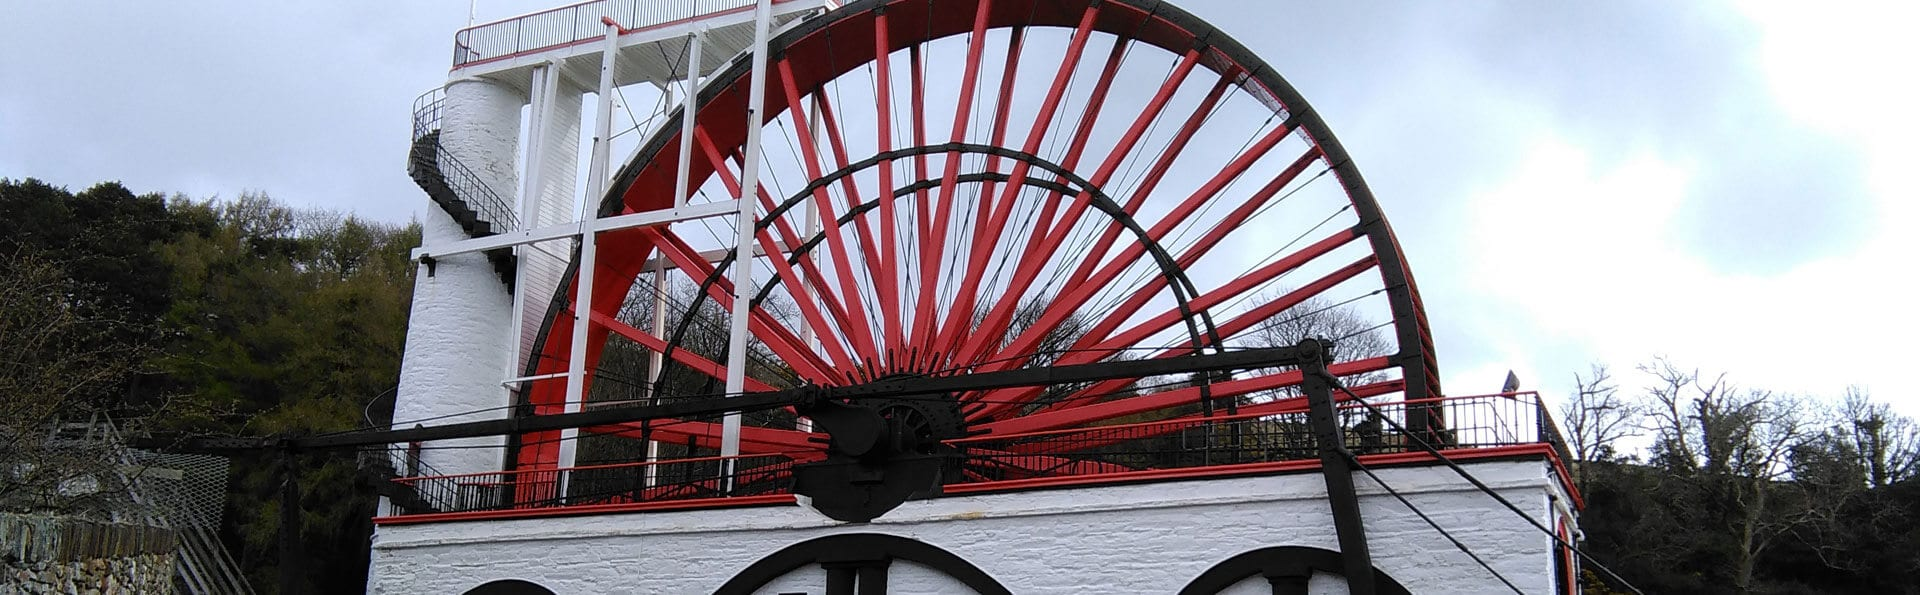 laxley-water-wheel-isle-of-man